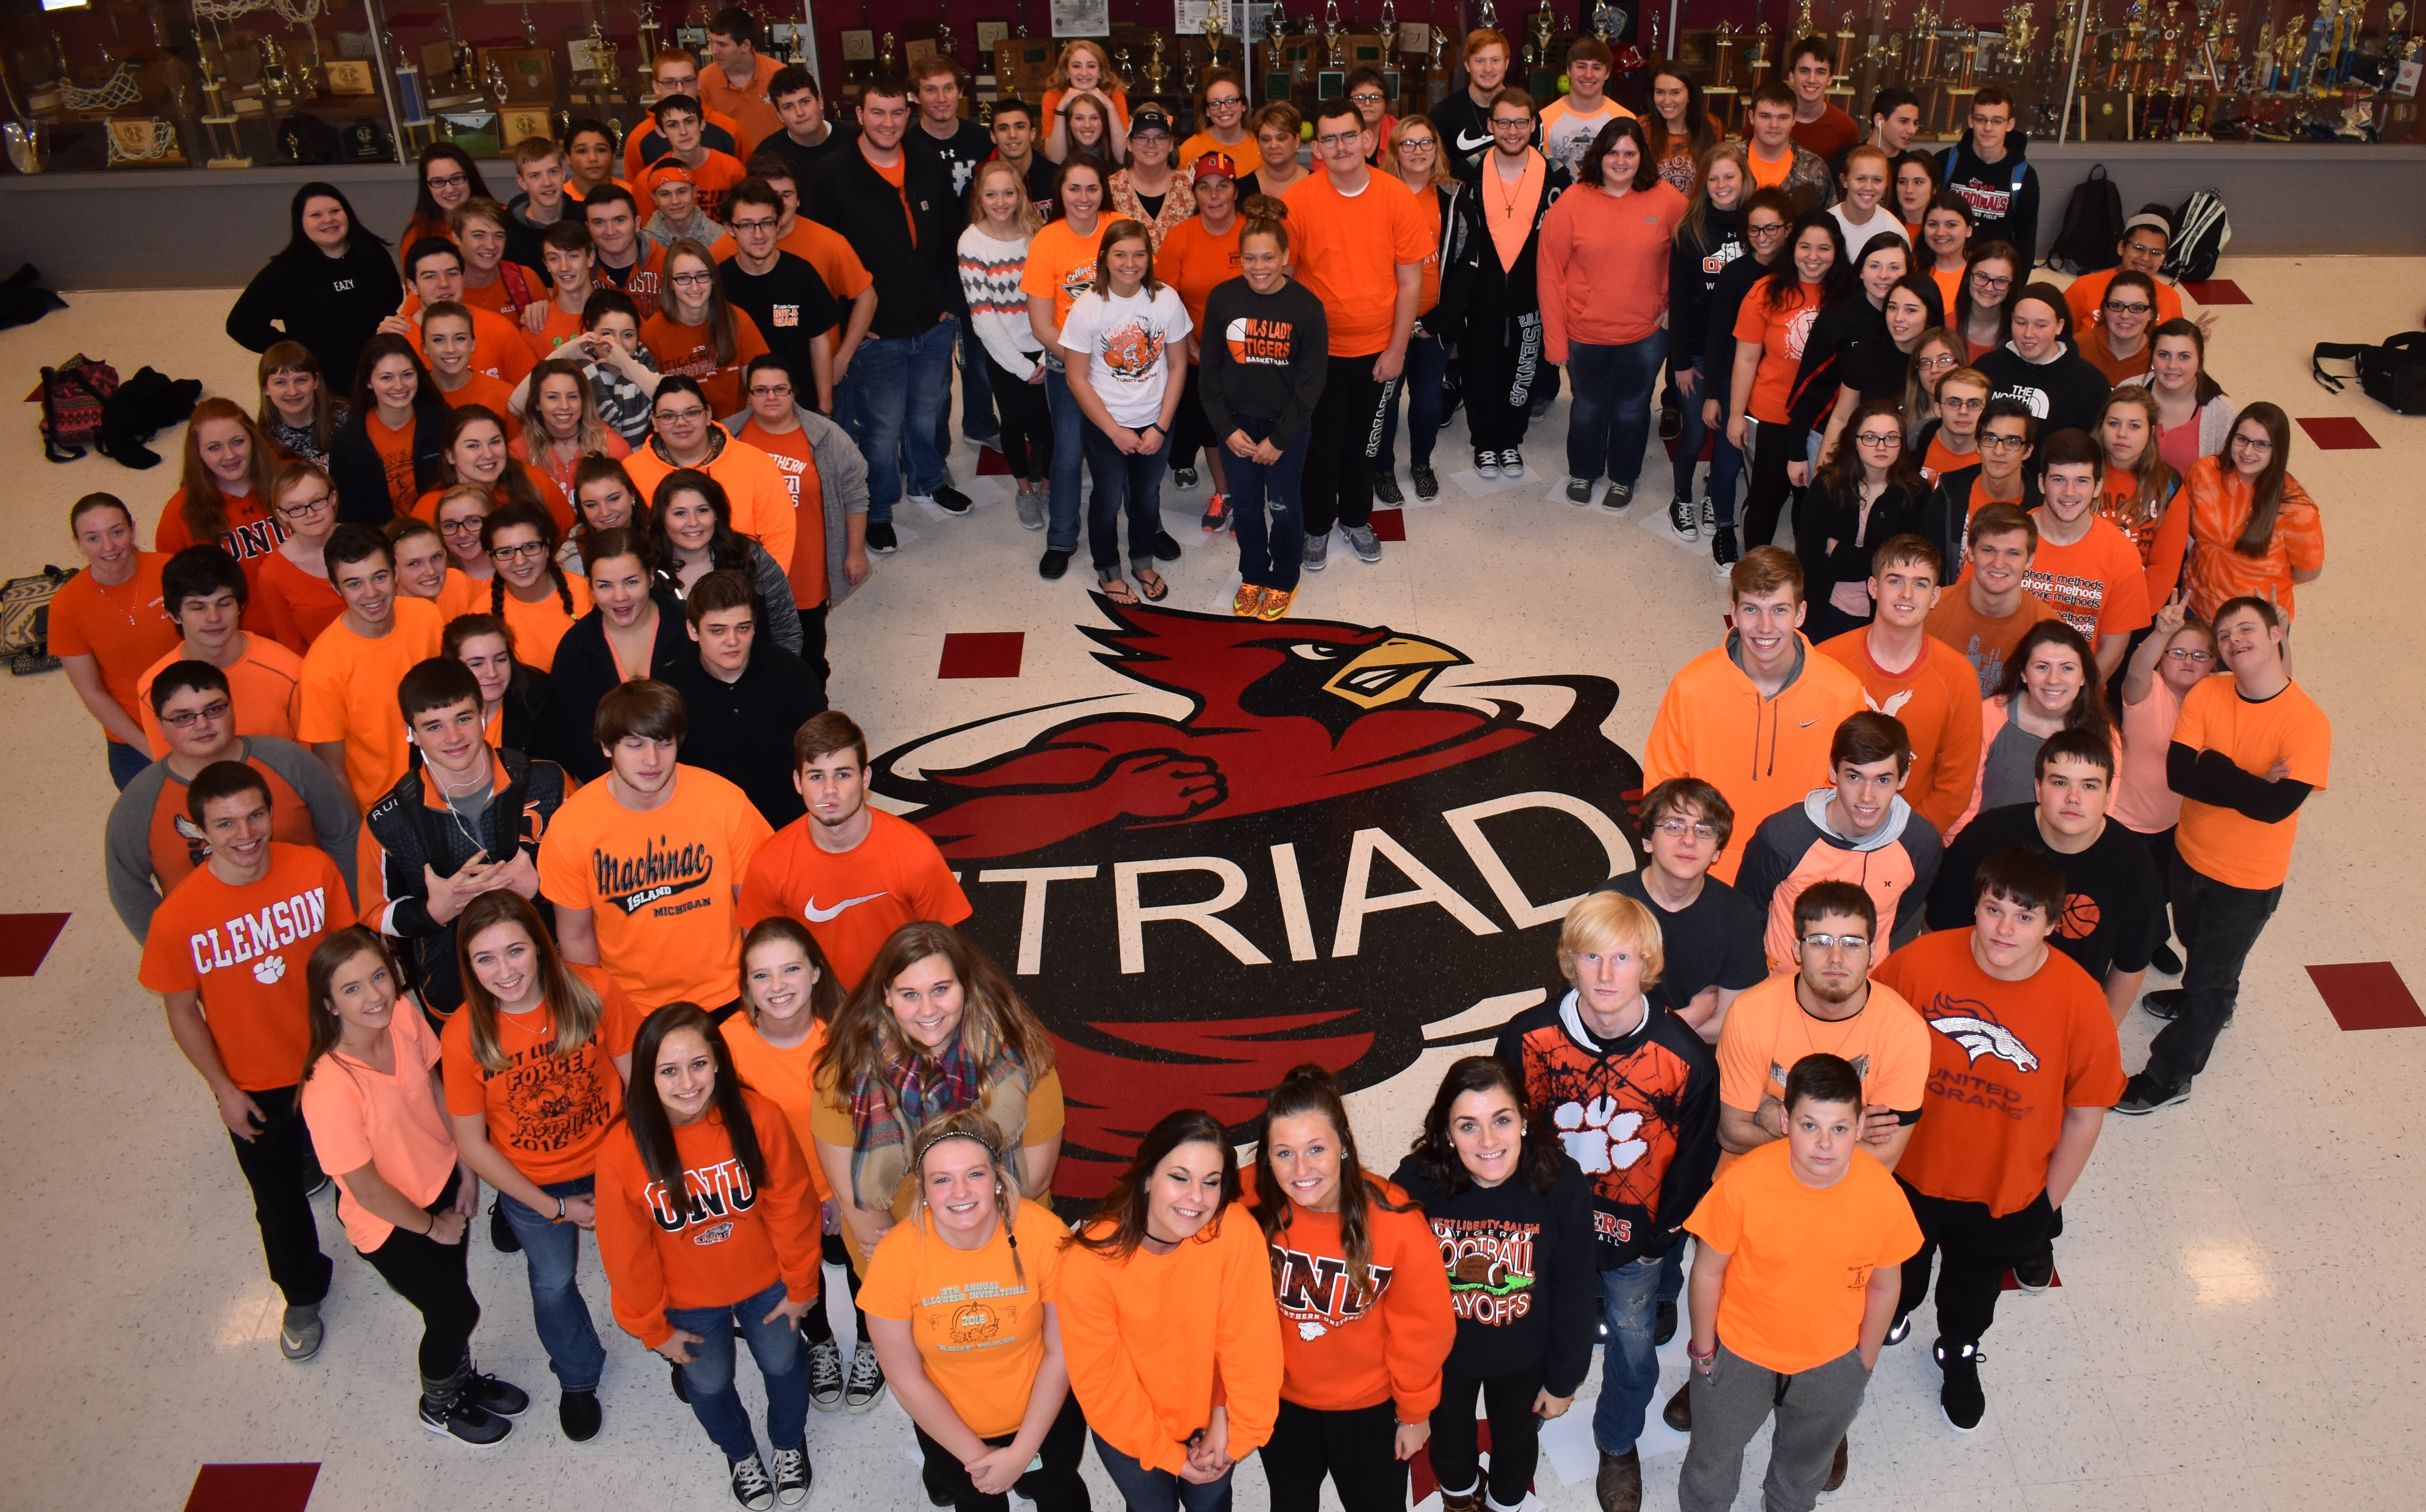 TRIAD STUDENTS SHOW SUPPORT TO WL-S